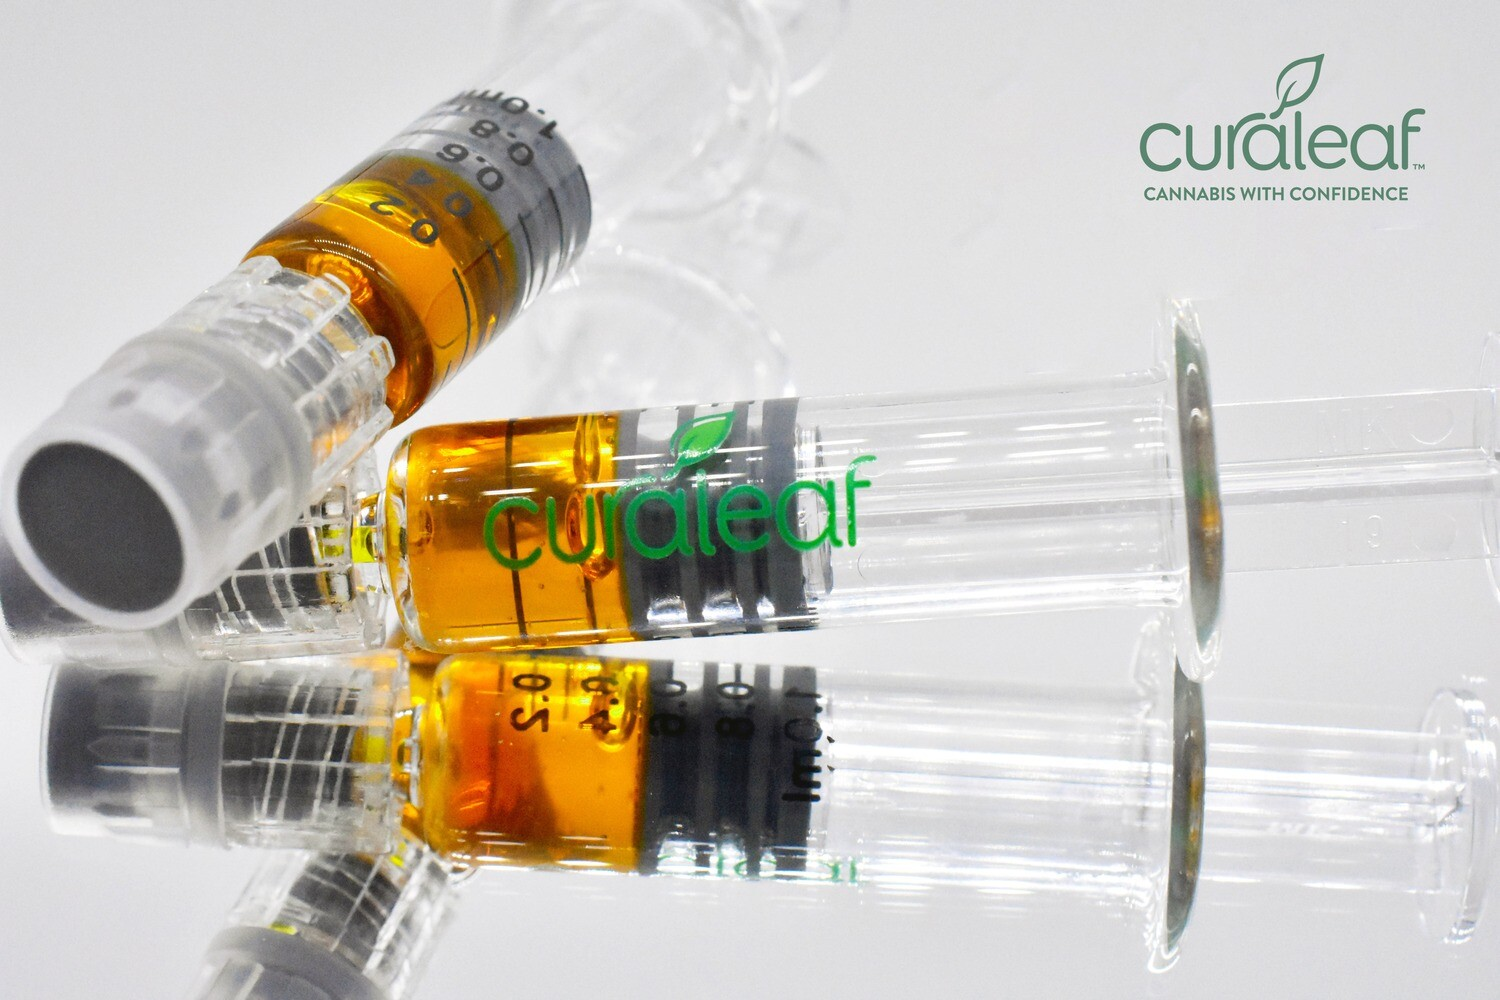 Sunlight T88% TD 10937 - 0.5g Vape and Concentrate Refill (Curaleaf)